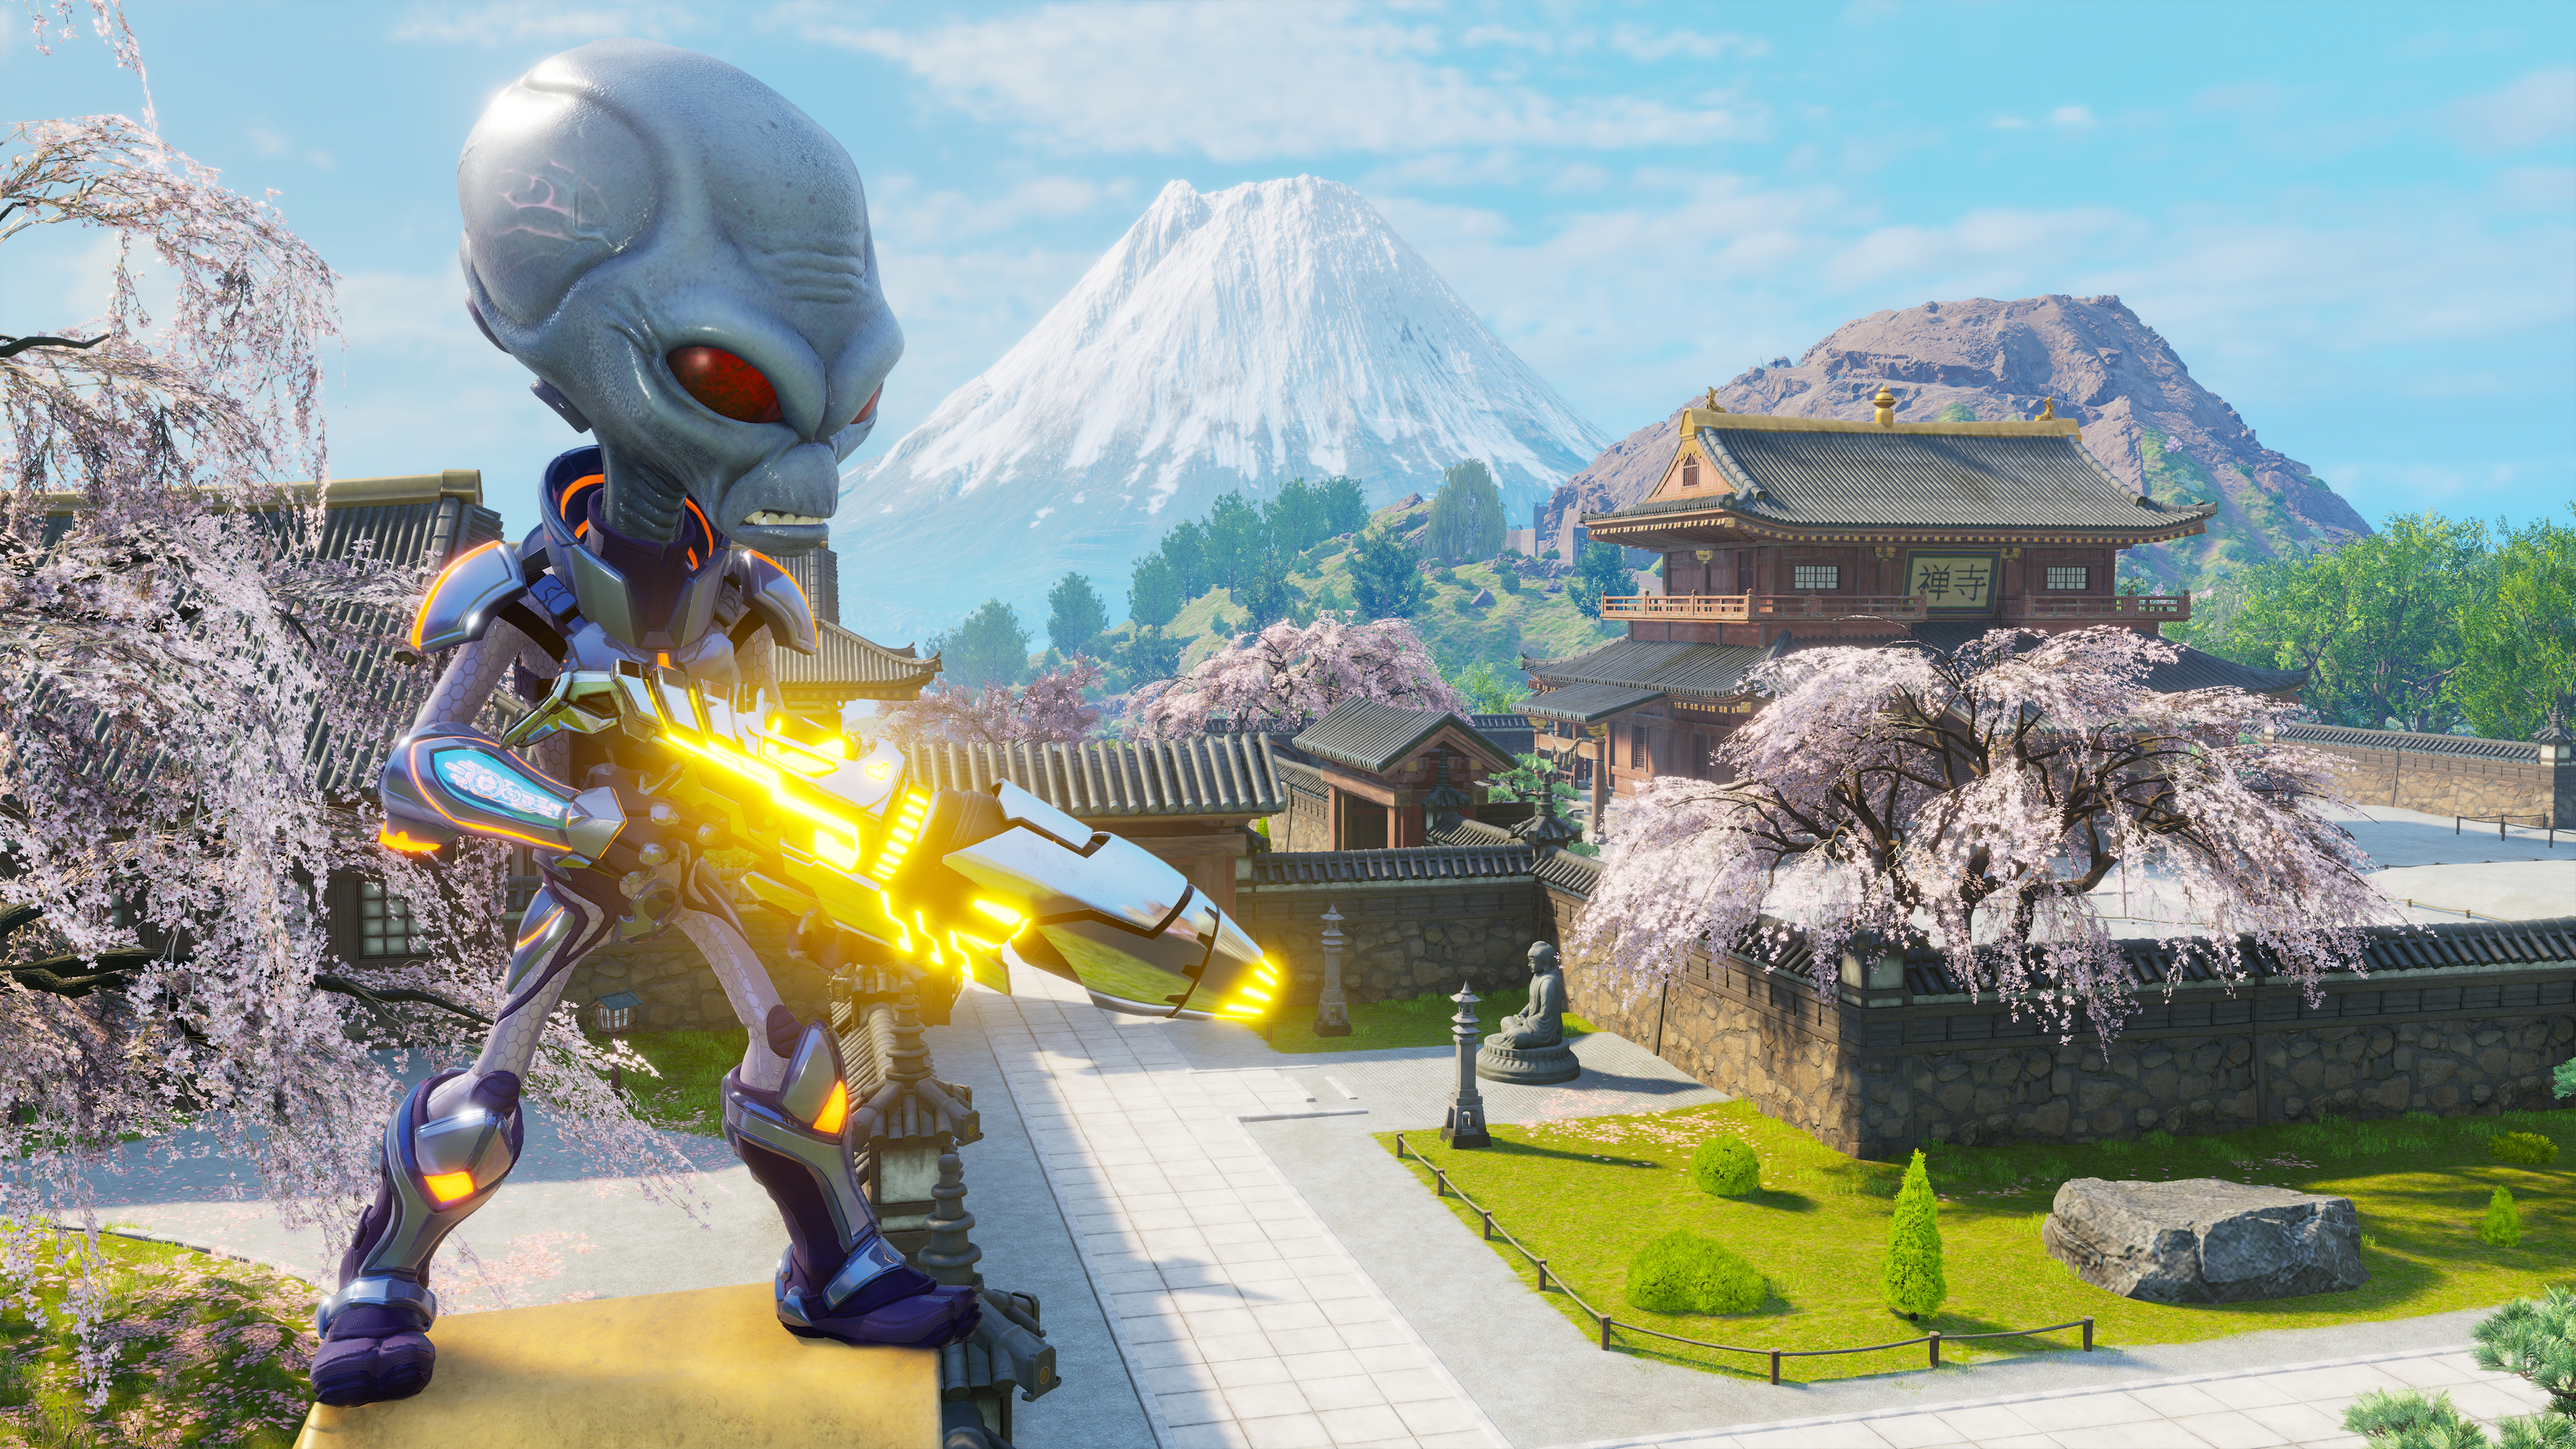 Crypto overlooks a Japanese town in Destroy All Humans! 2 - Reprobed